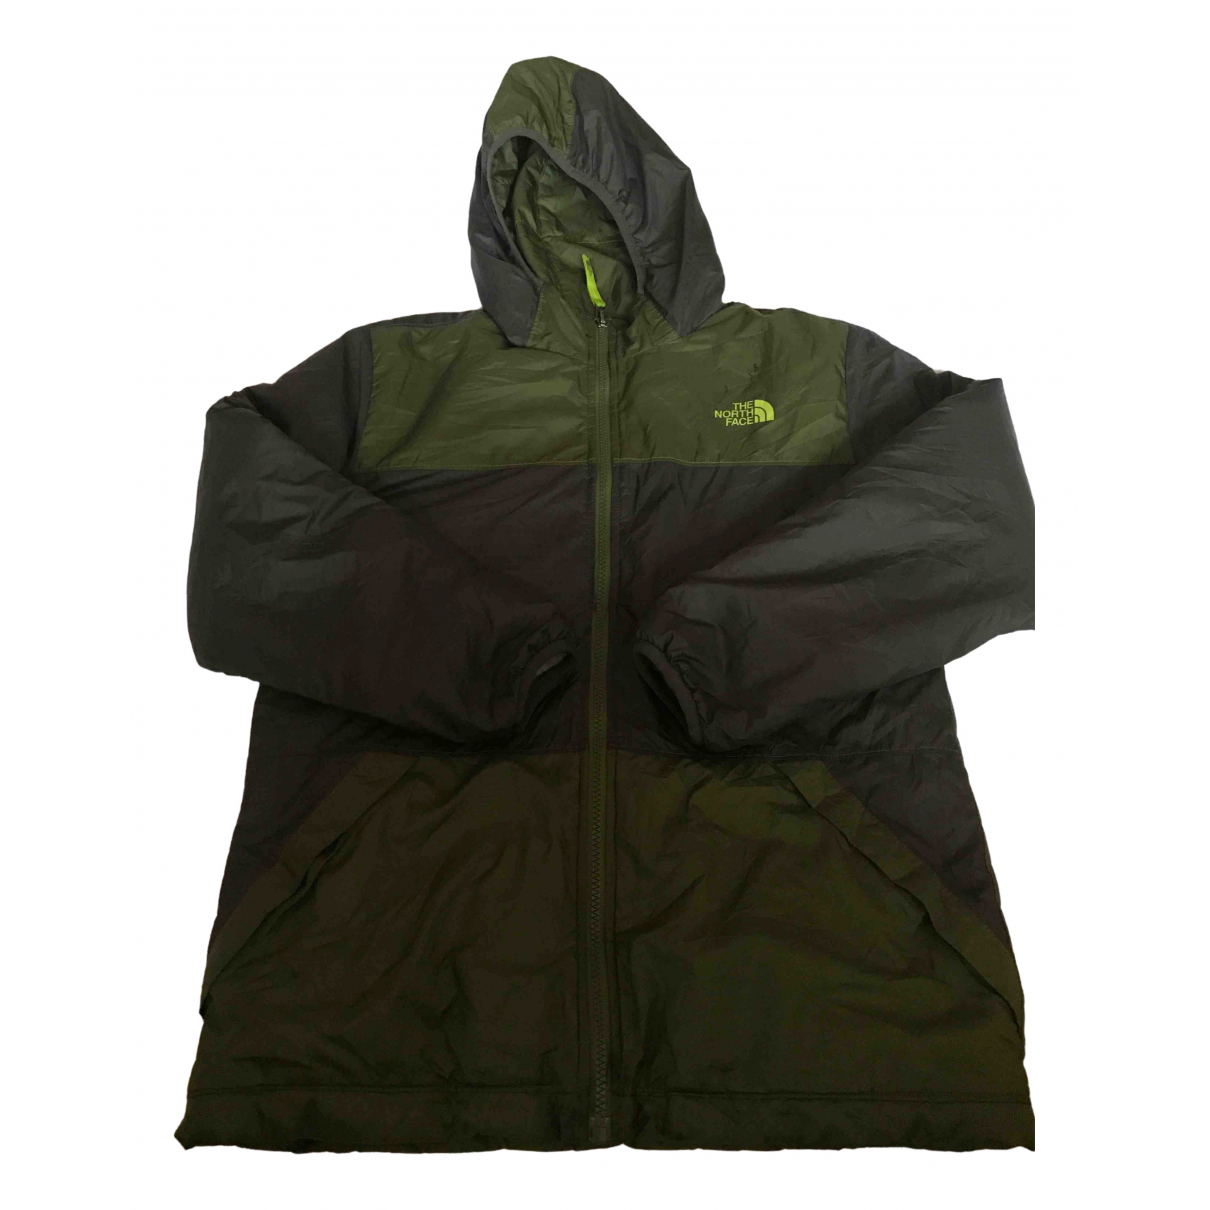 The North Face \N Green jacket & coat for Kids 16 years - M UK